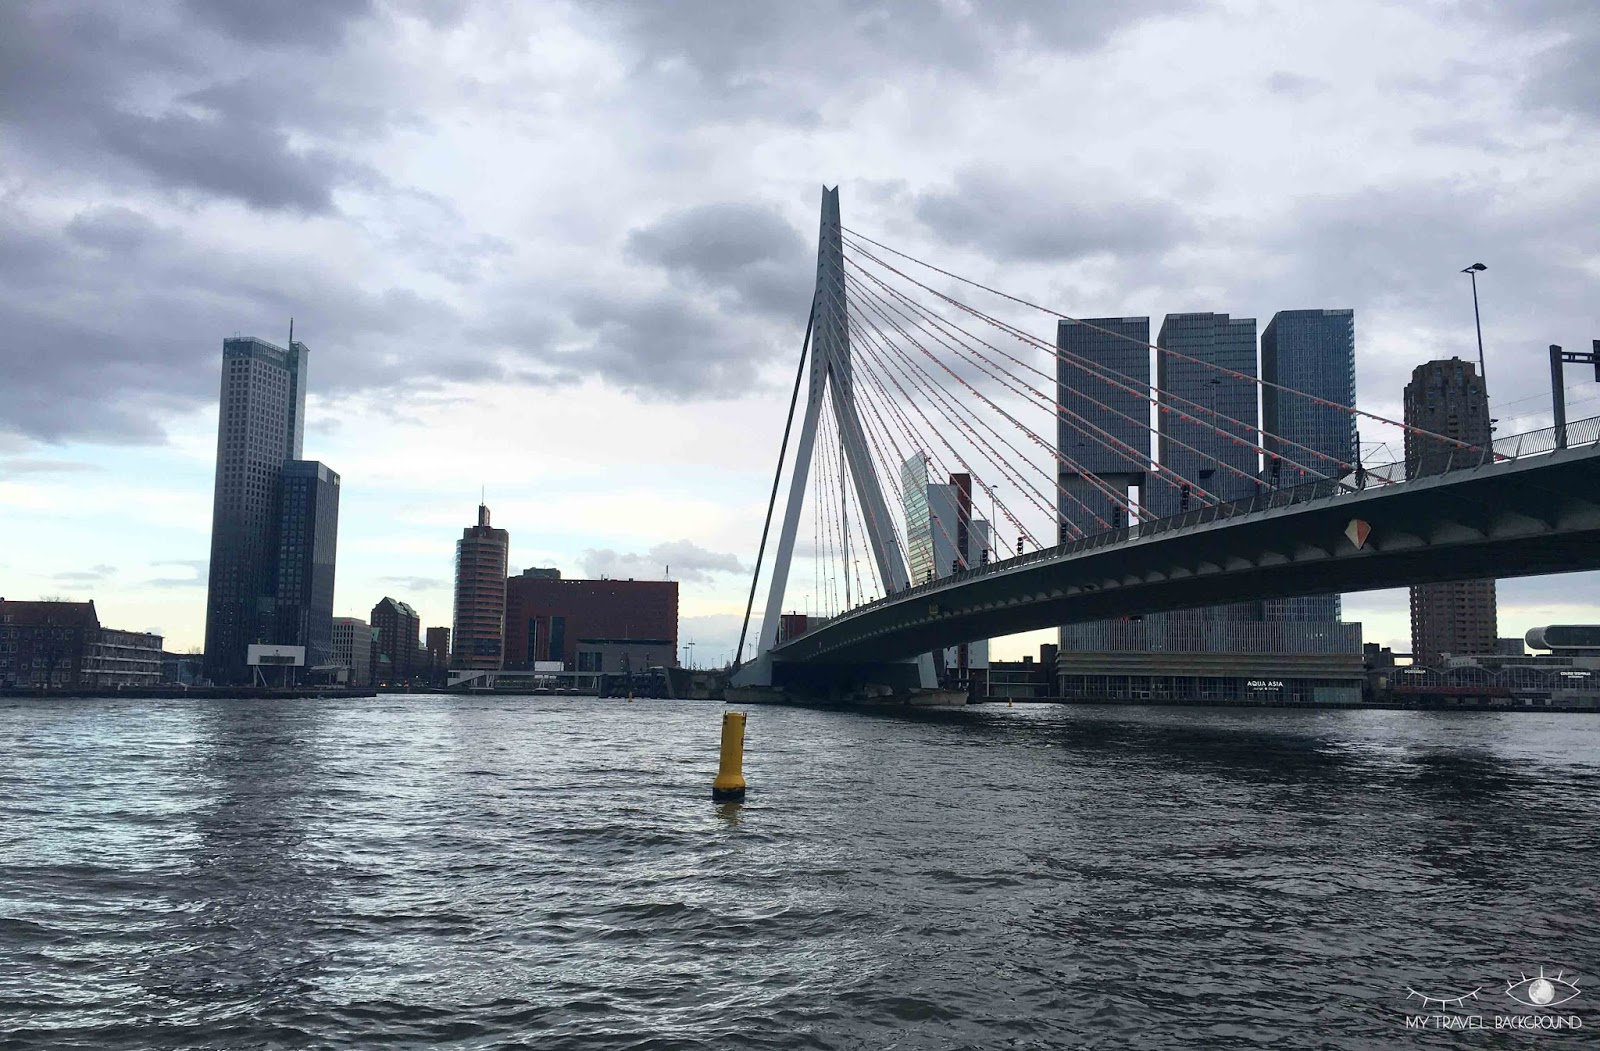 My Travel Background : pourquoi je suis tombée amoureuse de Rotterdam - Erasme